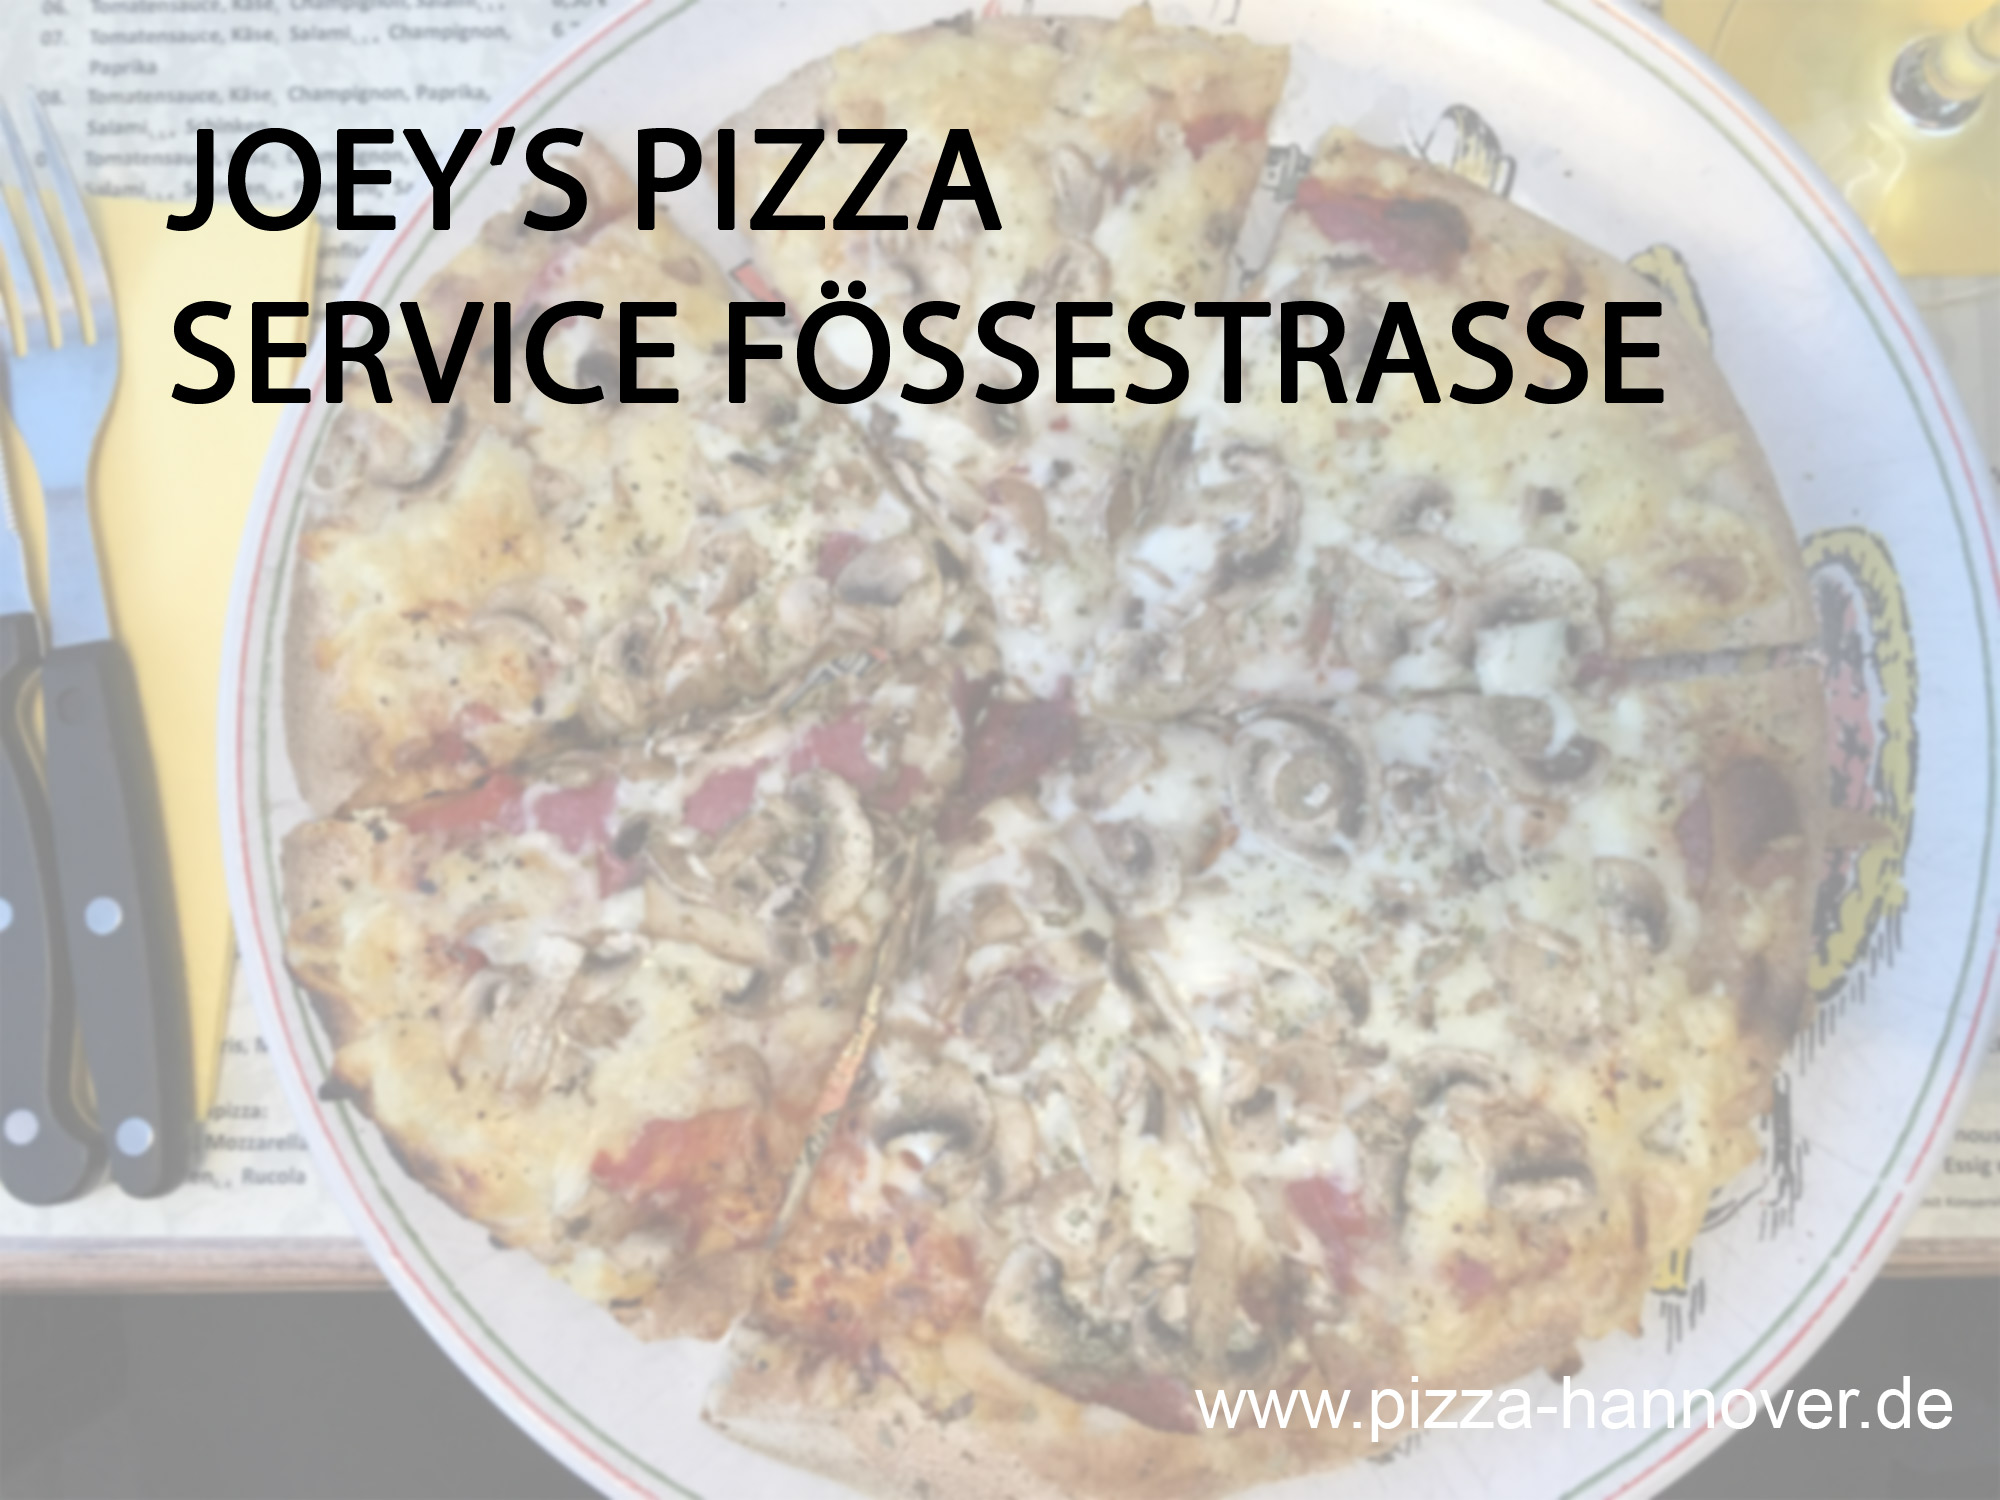 joey-s-pizza-service-foessestrasse-pizza-hannover